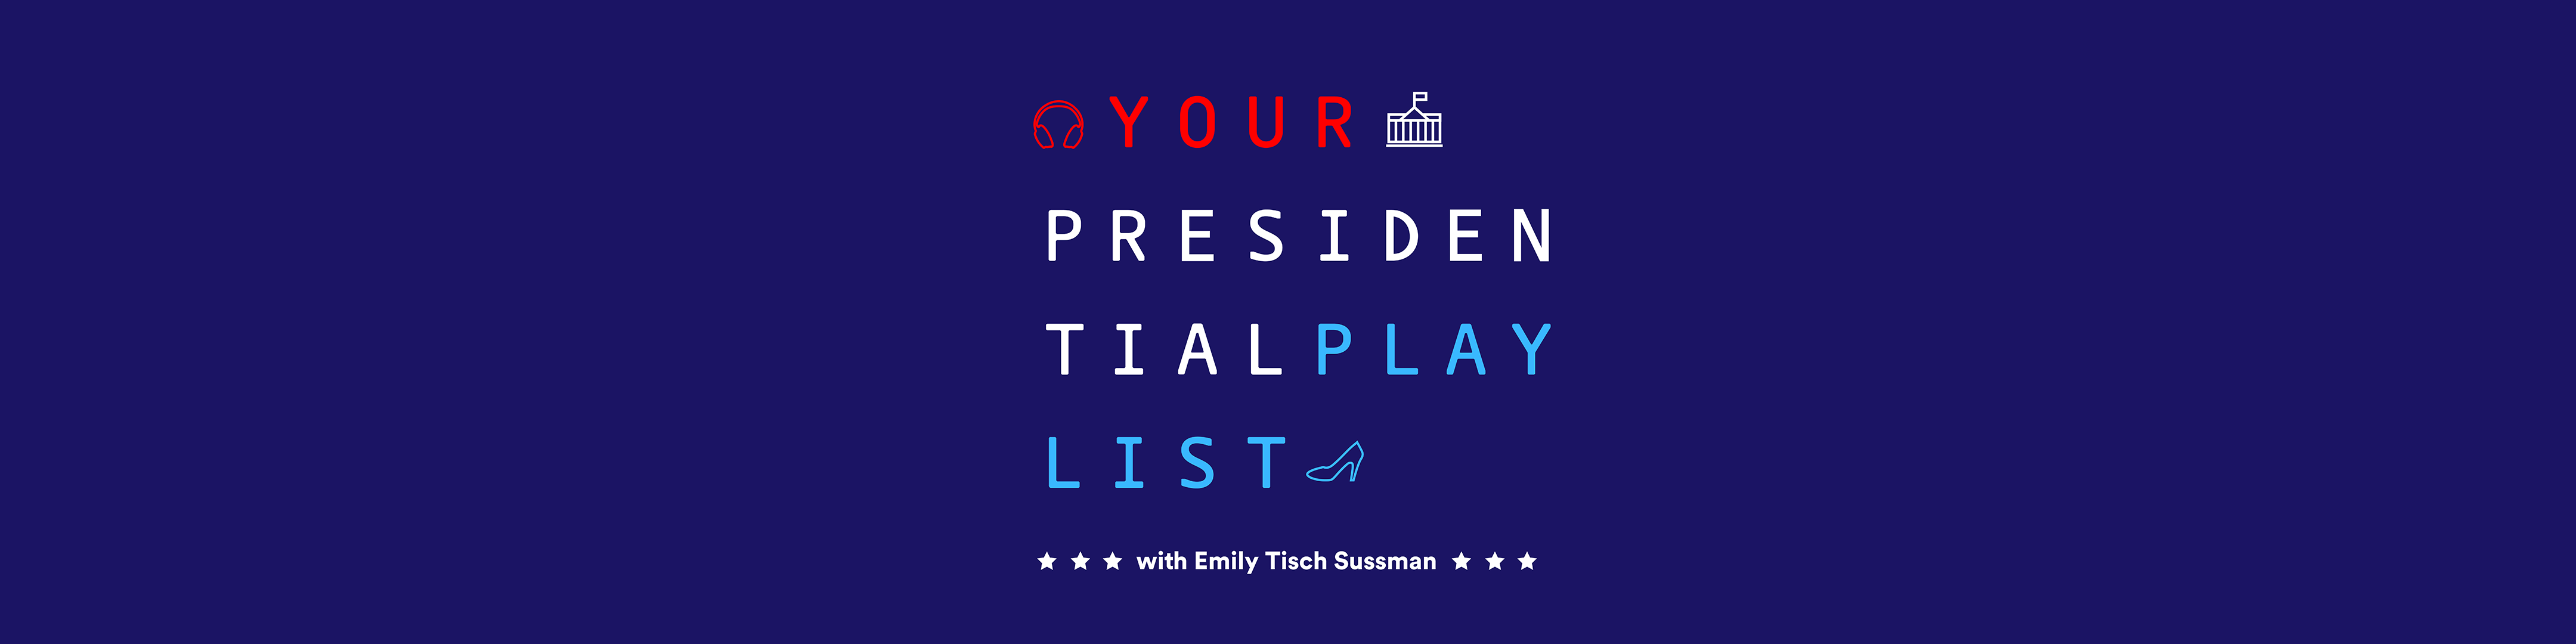 your-presidential-playlist-cover-image-wide-2